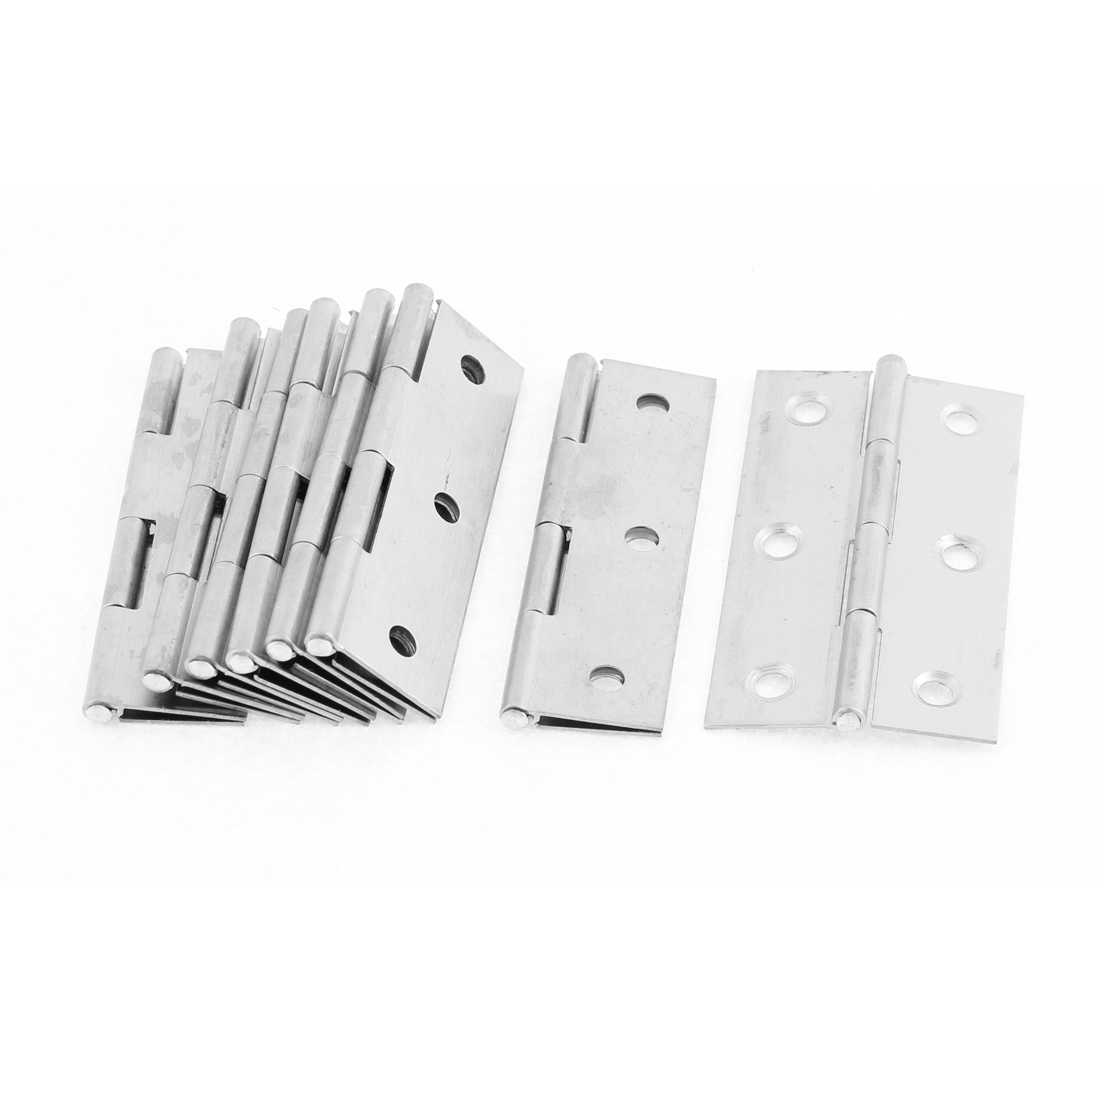 "8 Pcs Stainless Steel 4.7mm Mounting Hole 2.5"" Long Cabinet Door Hinge"